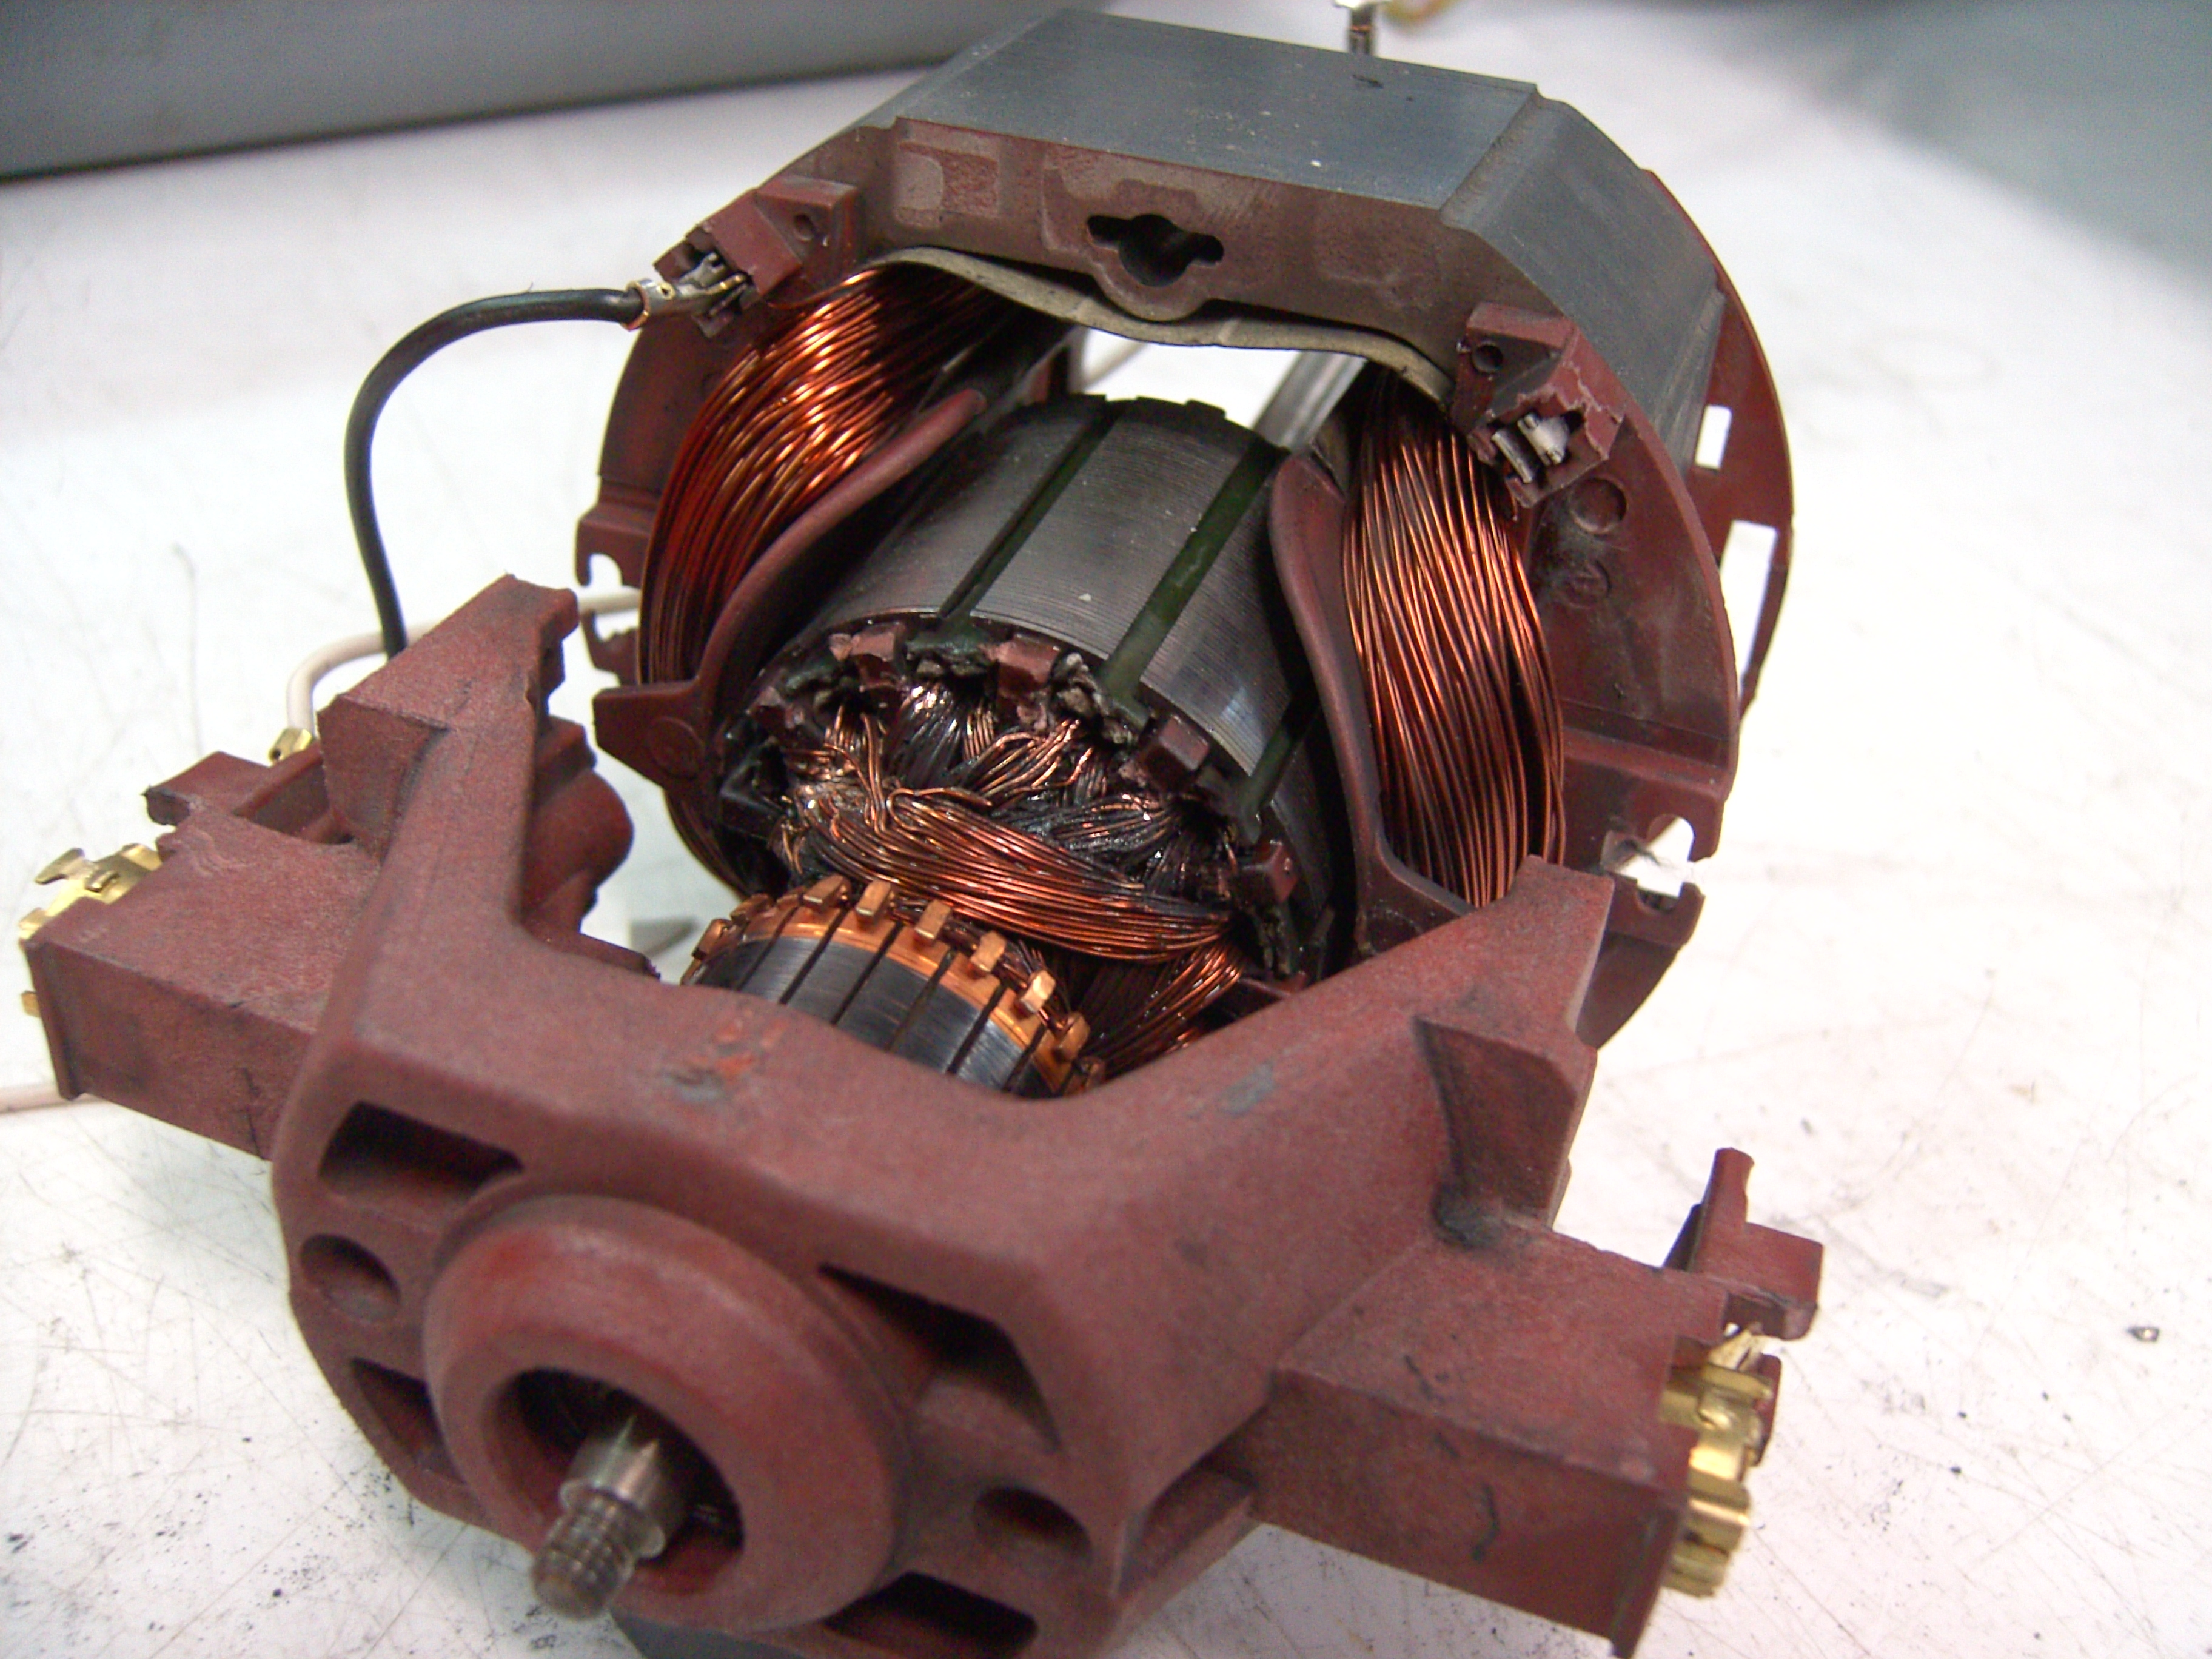 Ac Motors With Brushes besides Electric Motor Definition Physics in addition Electric Motor Definition Physics likewise Brush Motor Diagram also Lab 21 Servo Motor Control. on brushed dc electric motor cutaway